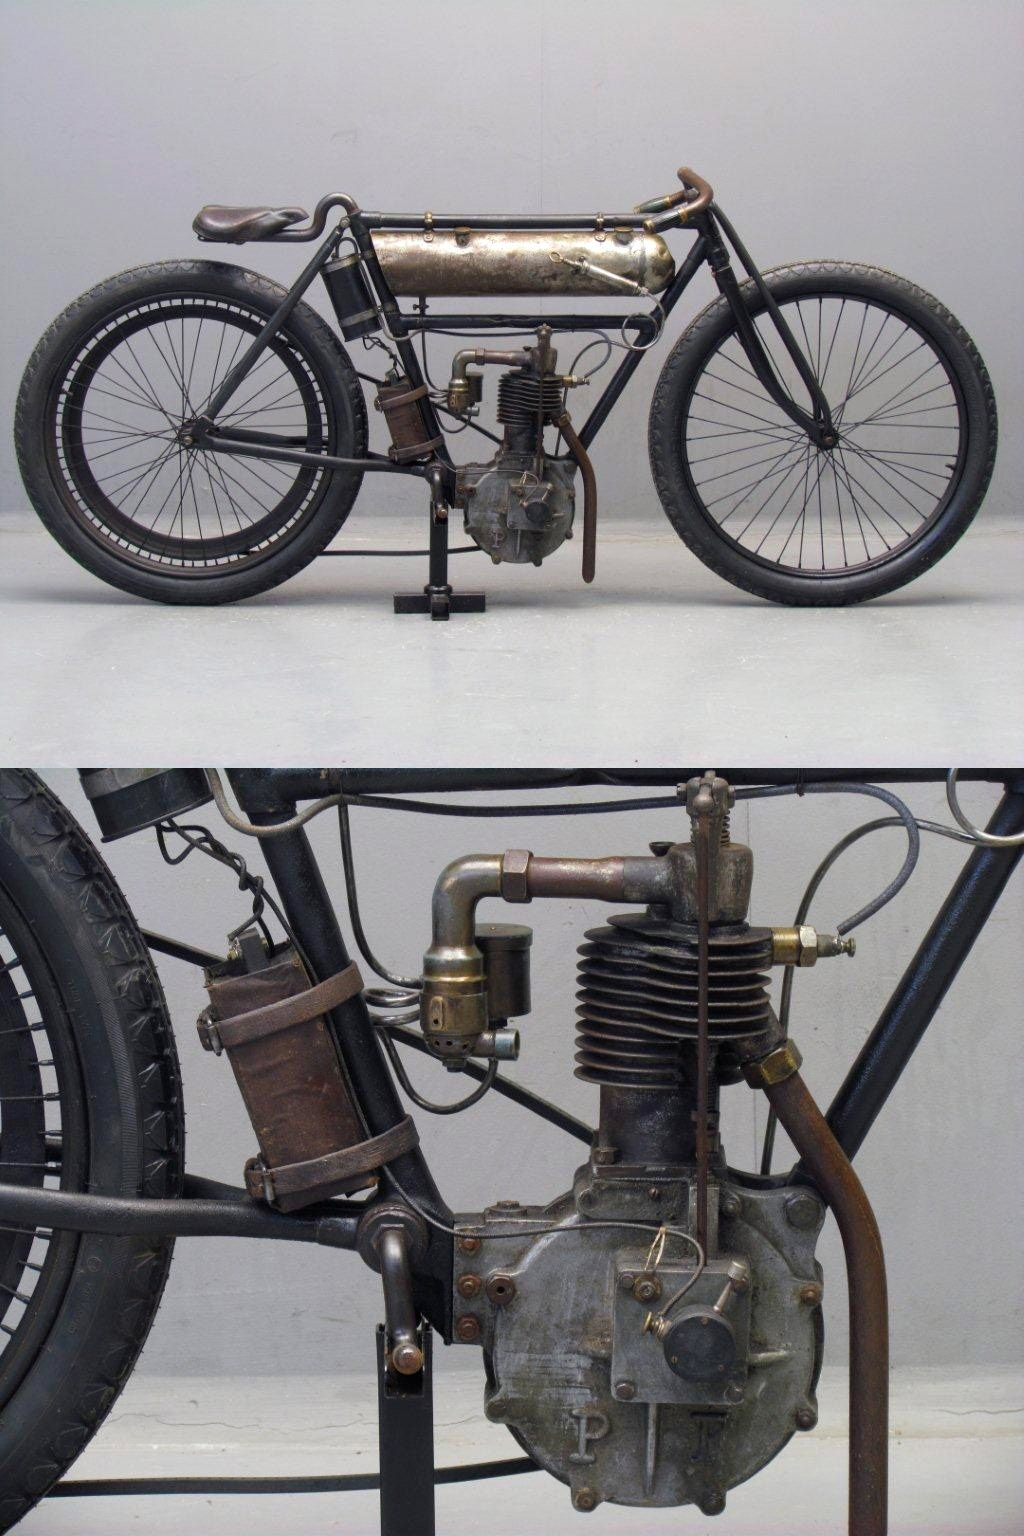 1904 330cc Peugeot Racer from Yesterdays. Another